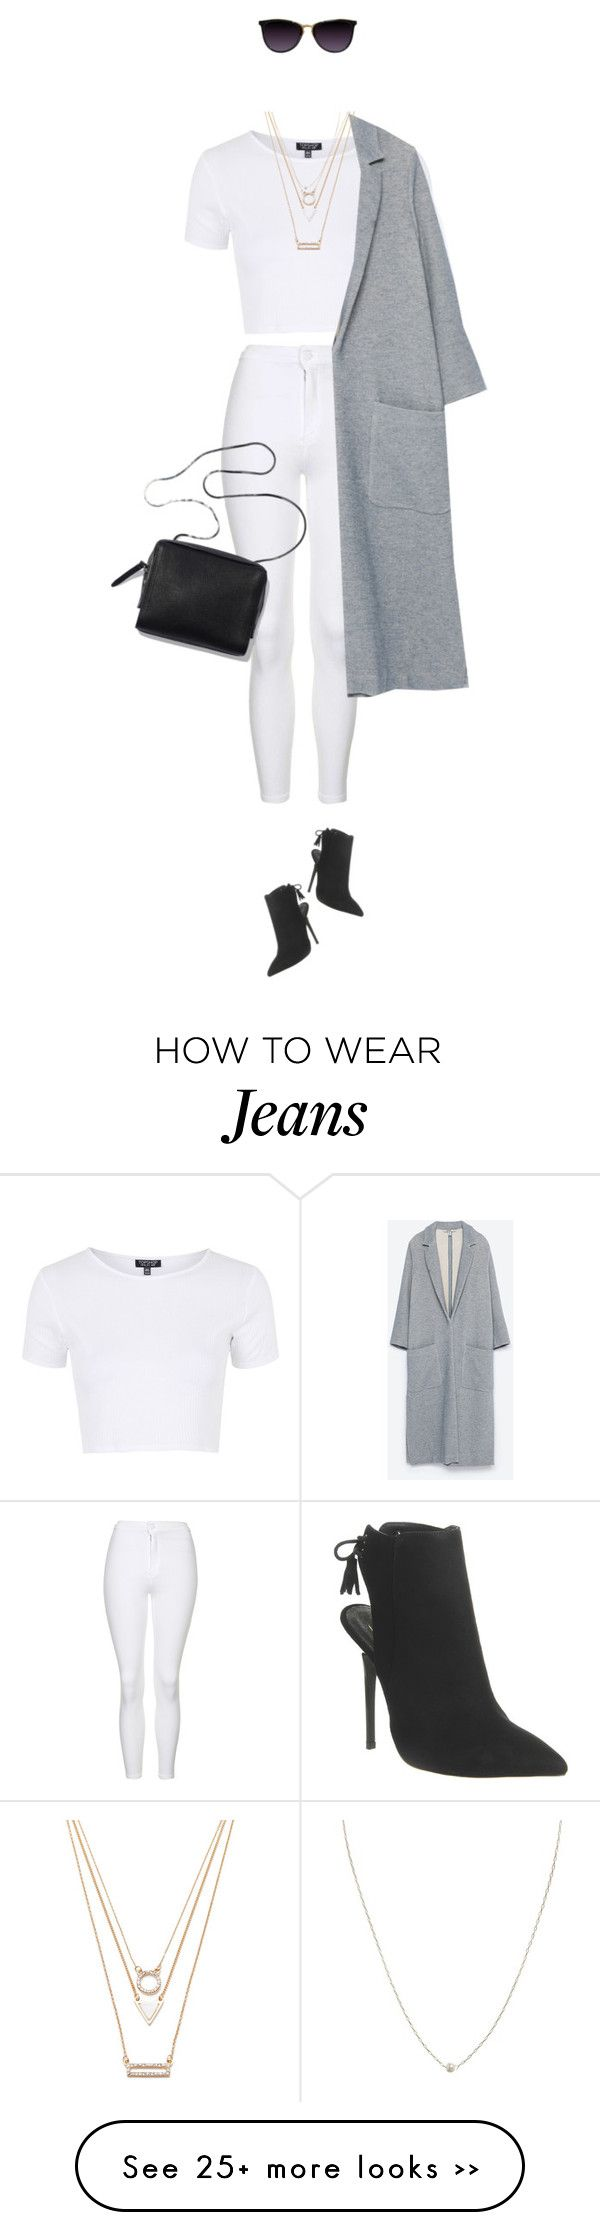 """White at fall. Yass just do it !"" by azzra on Polyvore featuring Topshop, Zara, ASOS, Office, Forever 21 and falldenimtrend"